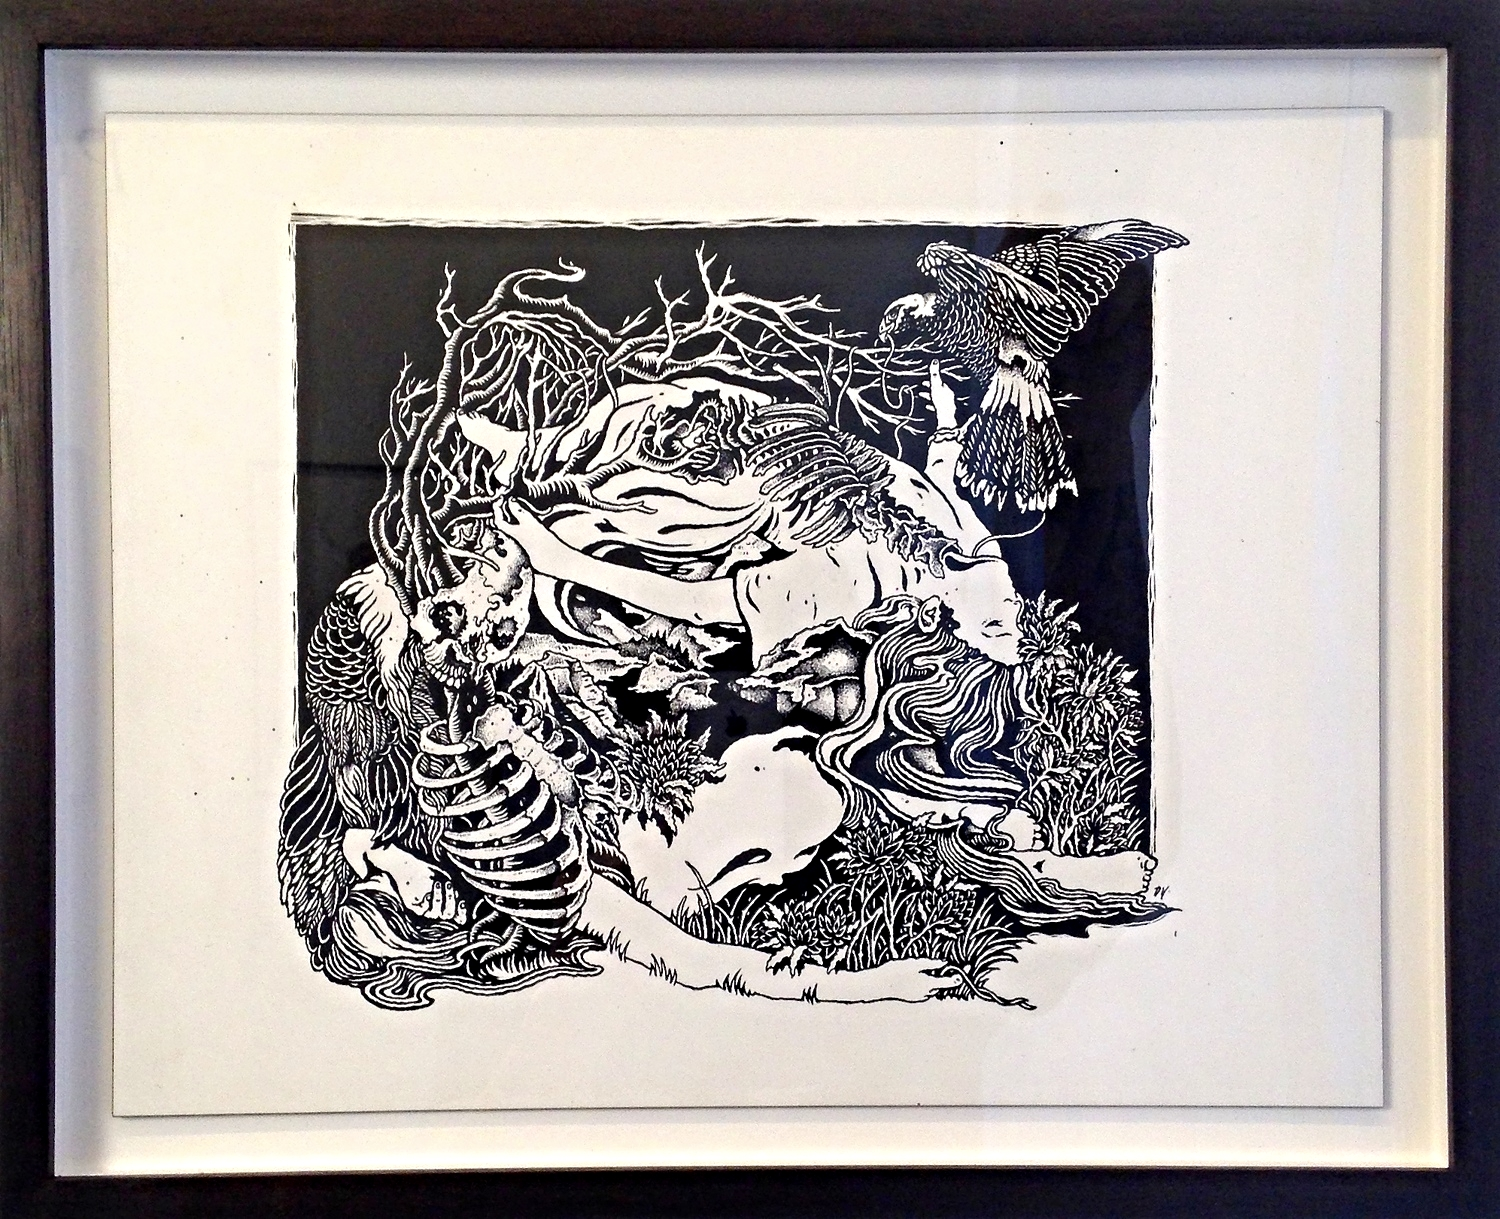 """SILVER CHORD   India Ink on Wood Panel Framed 13 1/4 x 16 1/4 $1625 Unframed 11x14 $1500 Intronaut album cover from """"Habitual Levitations""""."""